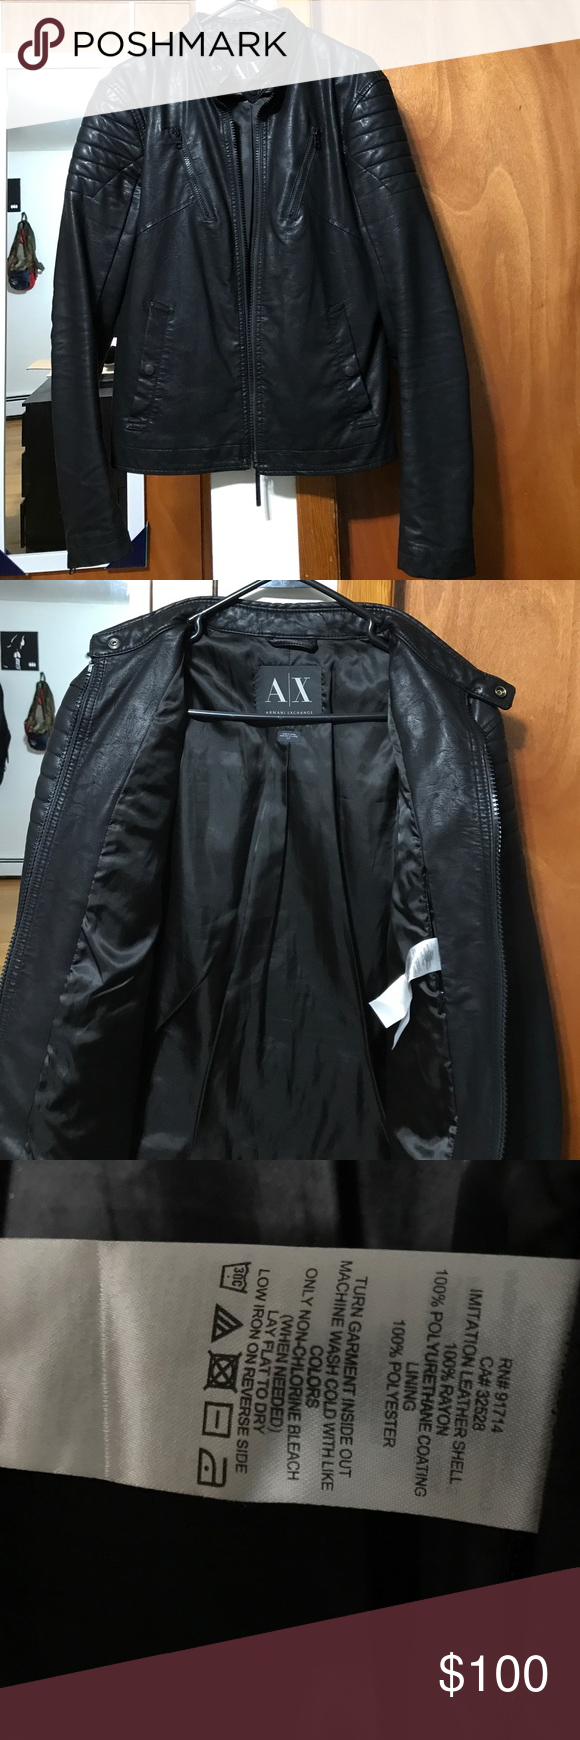 Leather Jacket Armani Exchange size Small (With images